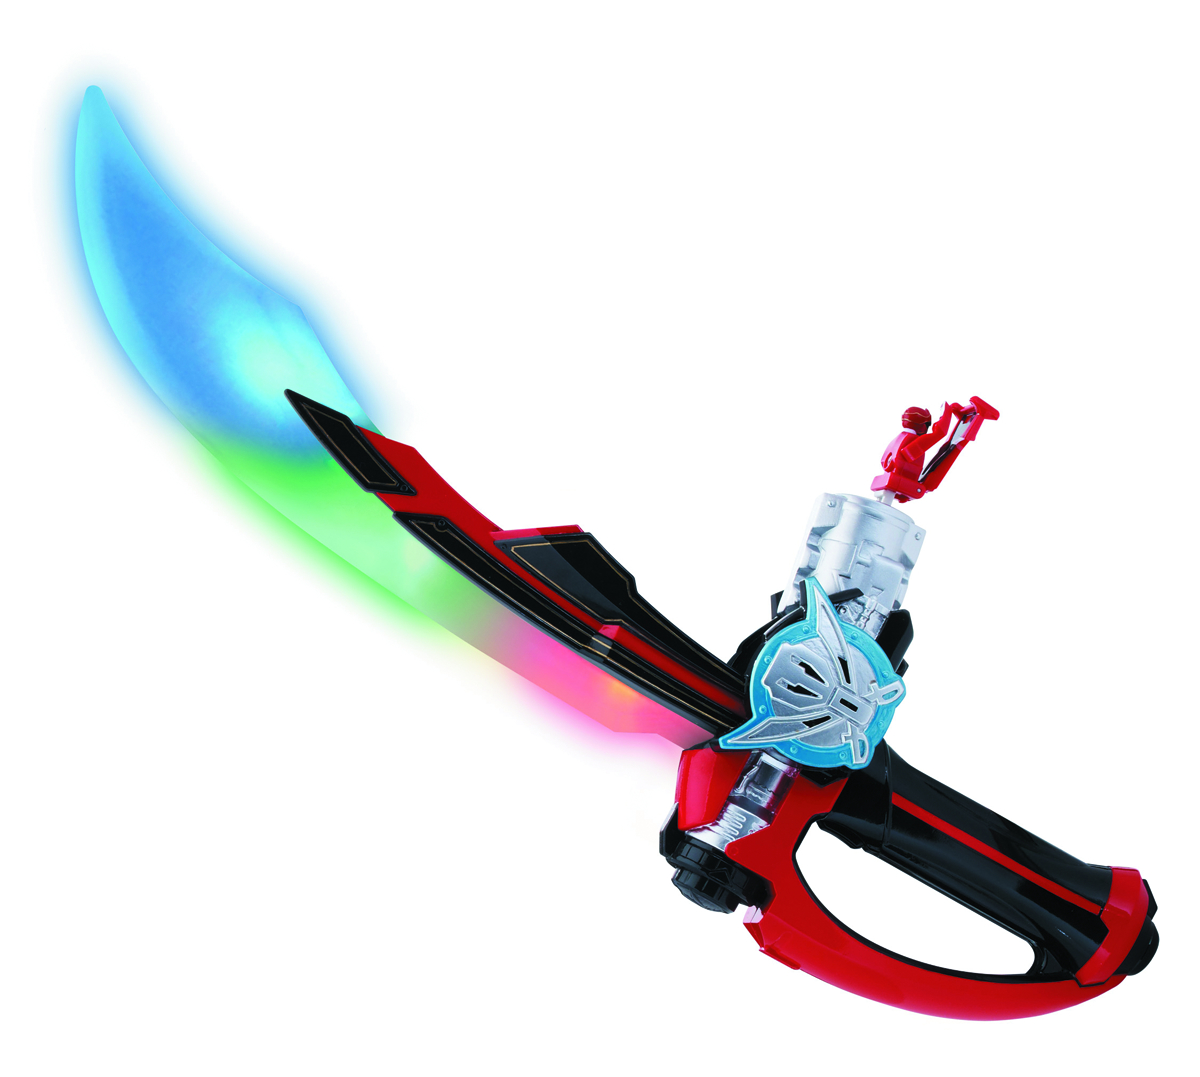 MAR142022 - POWER RANGERS SUPER MEGAFORCE DLX GEAR ASST ...